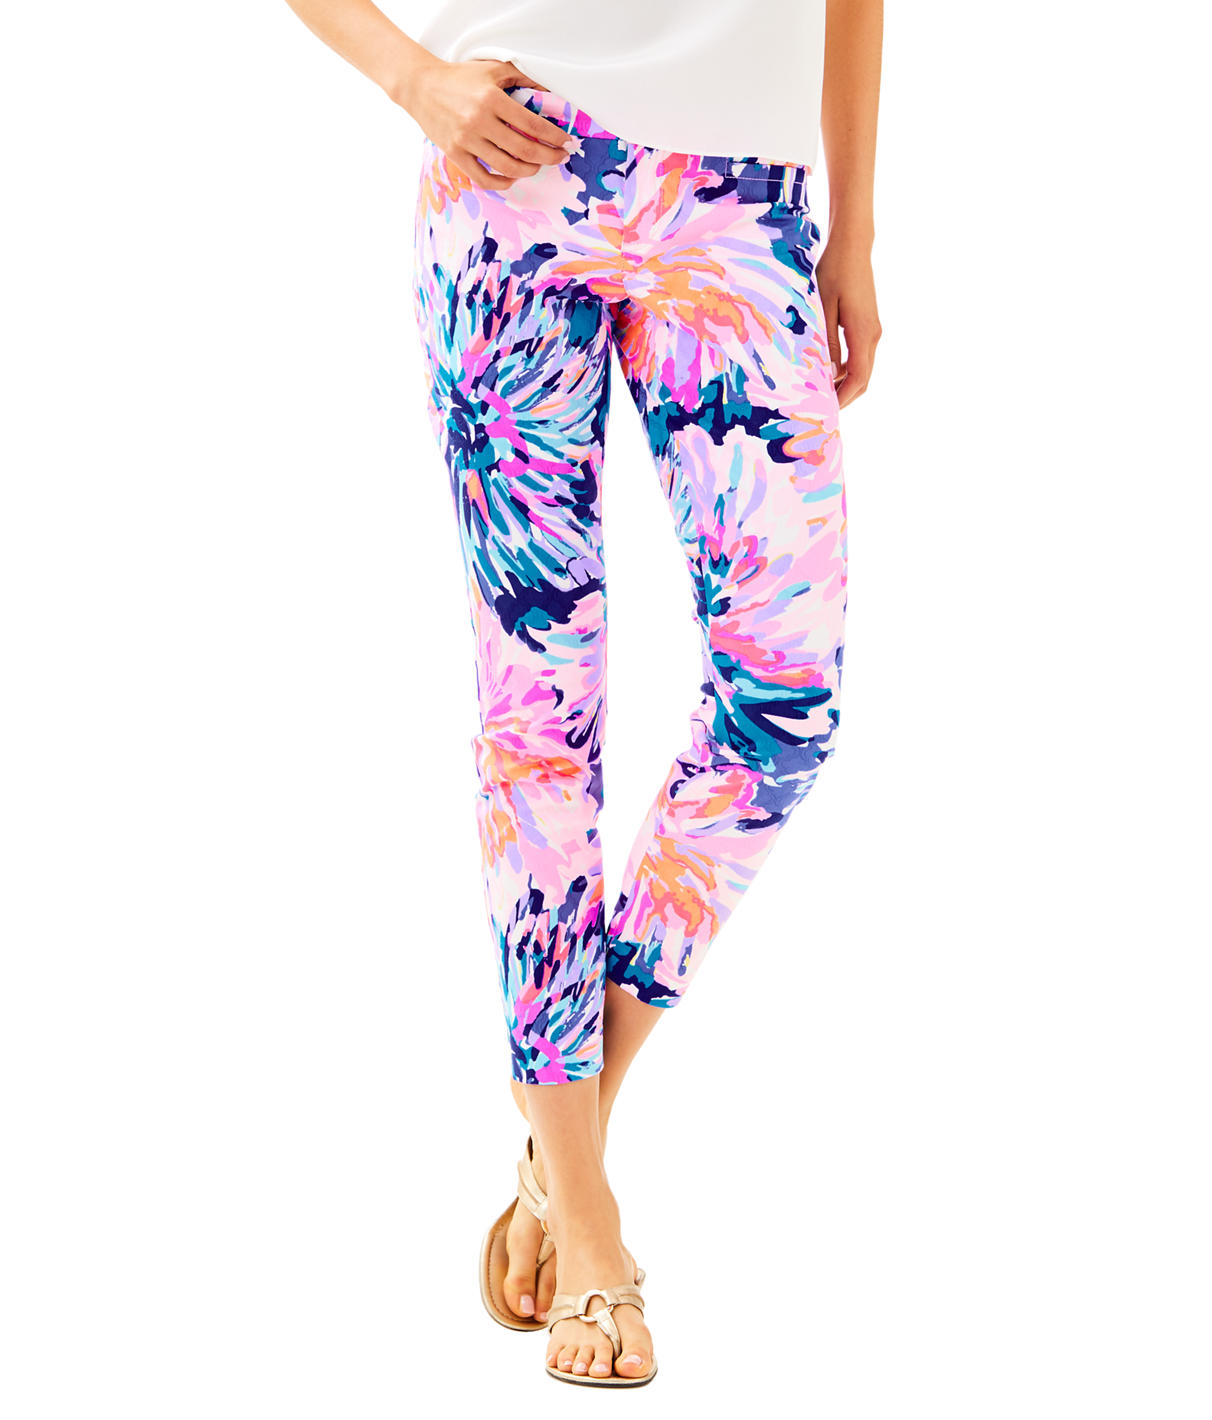 Lilly Pulitzer Lilly Pulitzer Womens 29